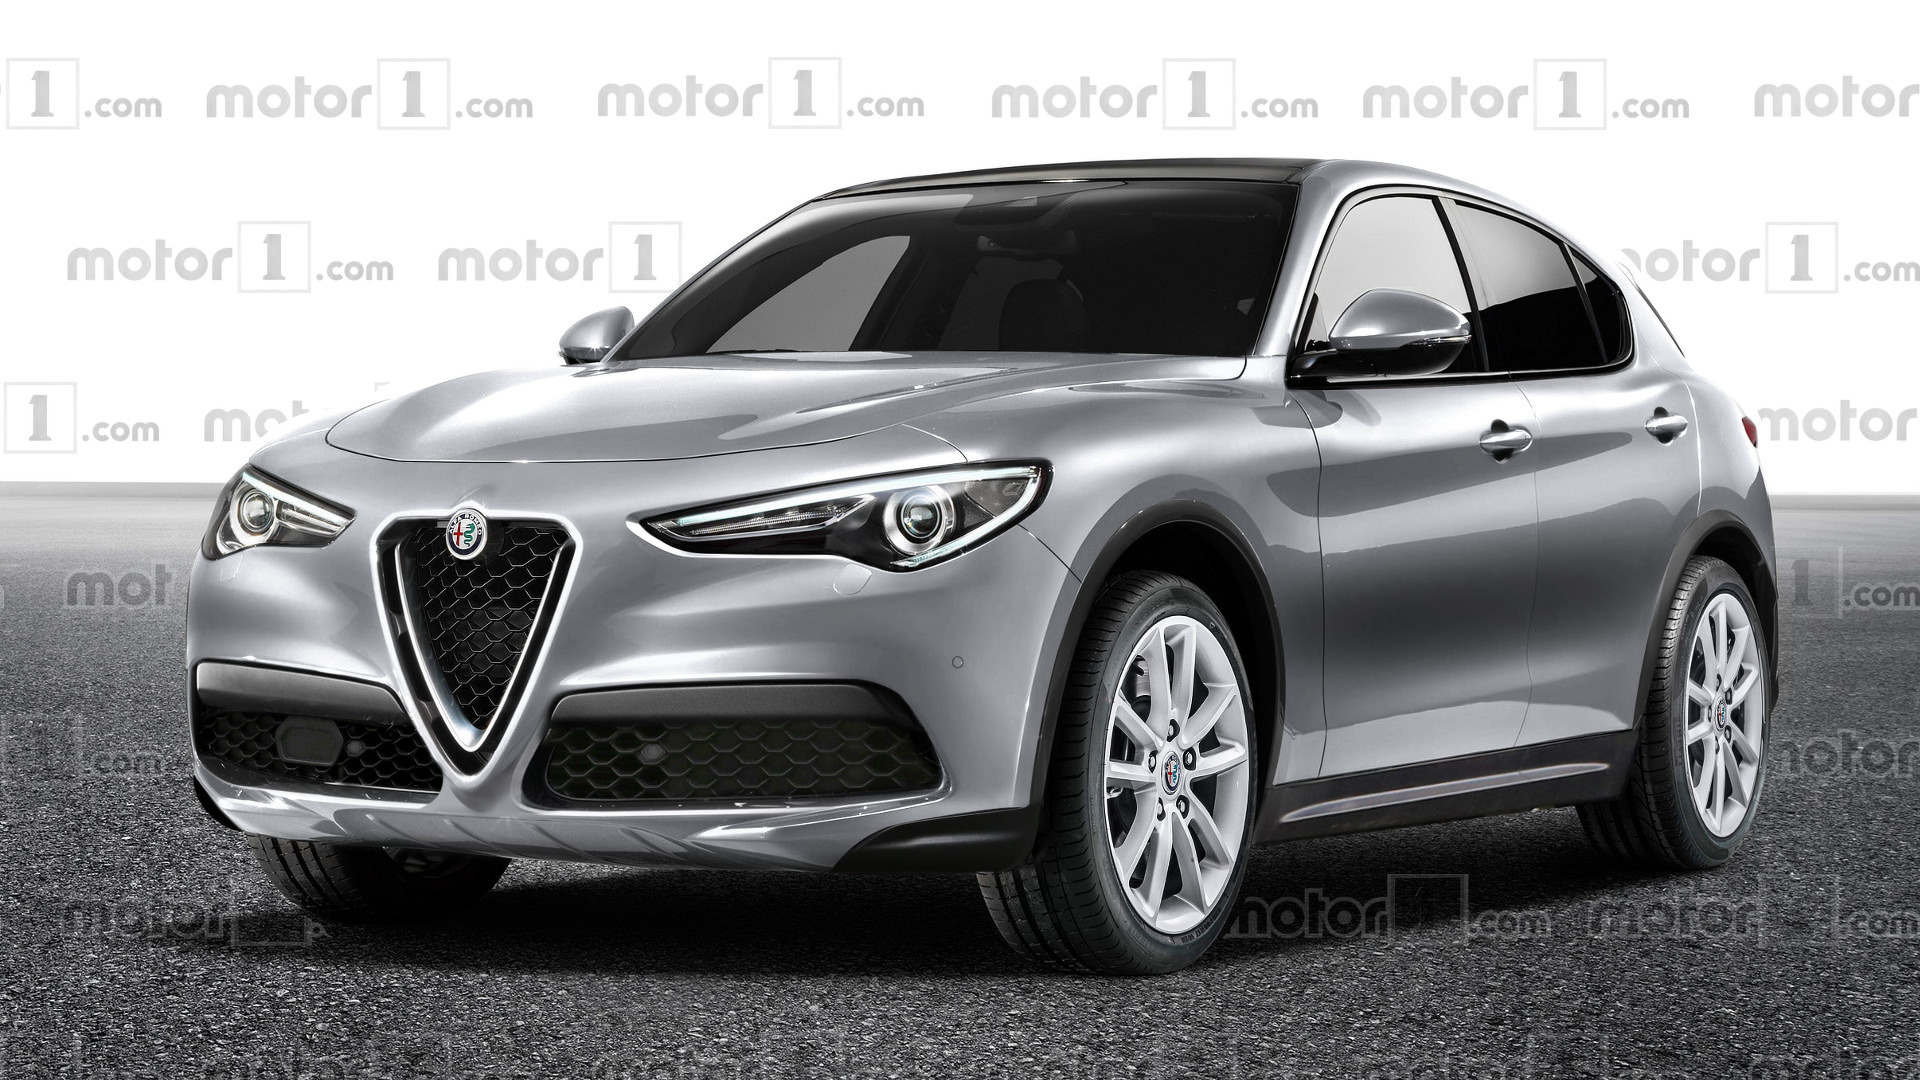 alfa romeo stelvio rendered in cheaper trim. Black Bedroom Furniture Sets. Home Design Ideas